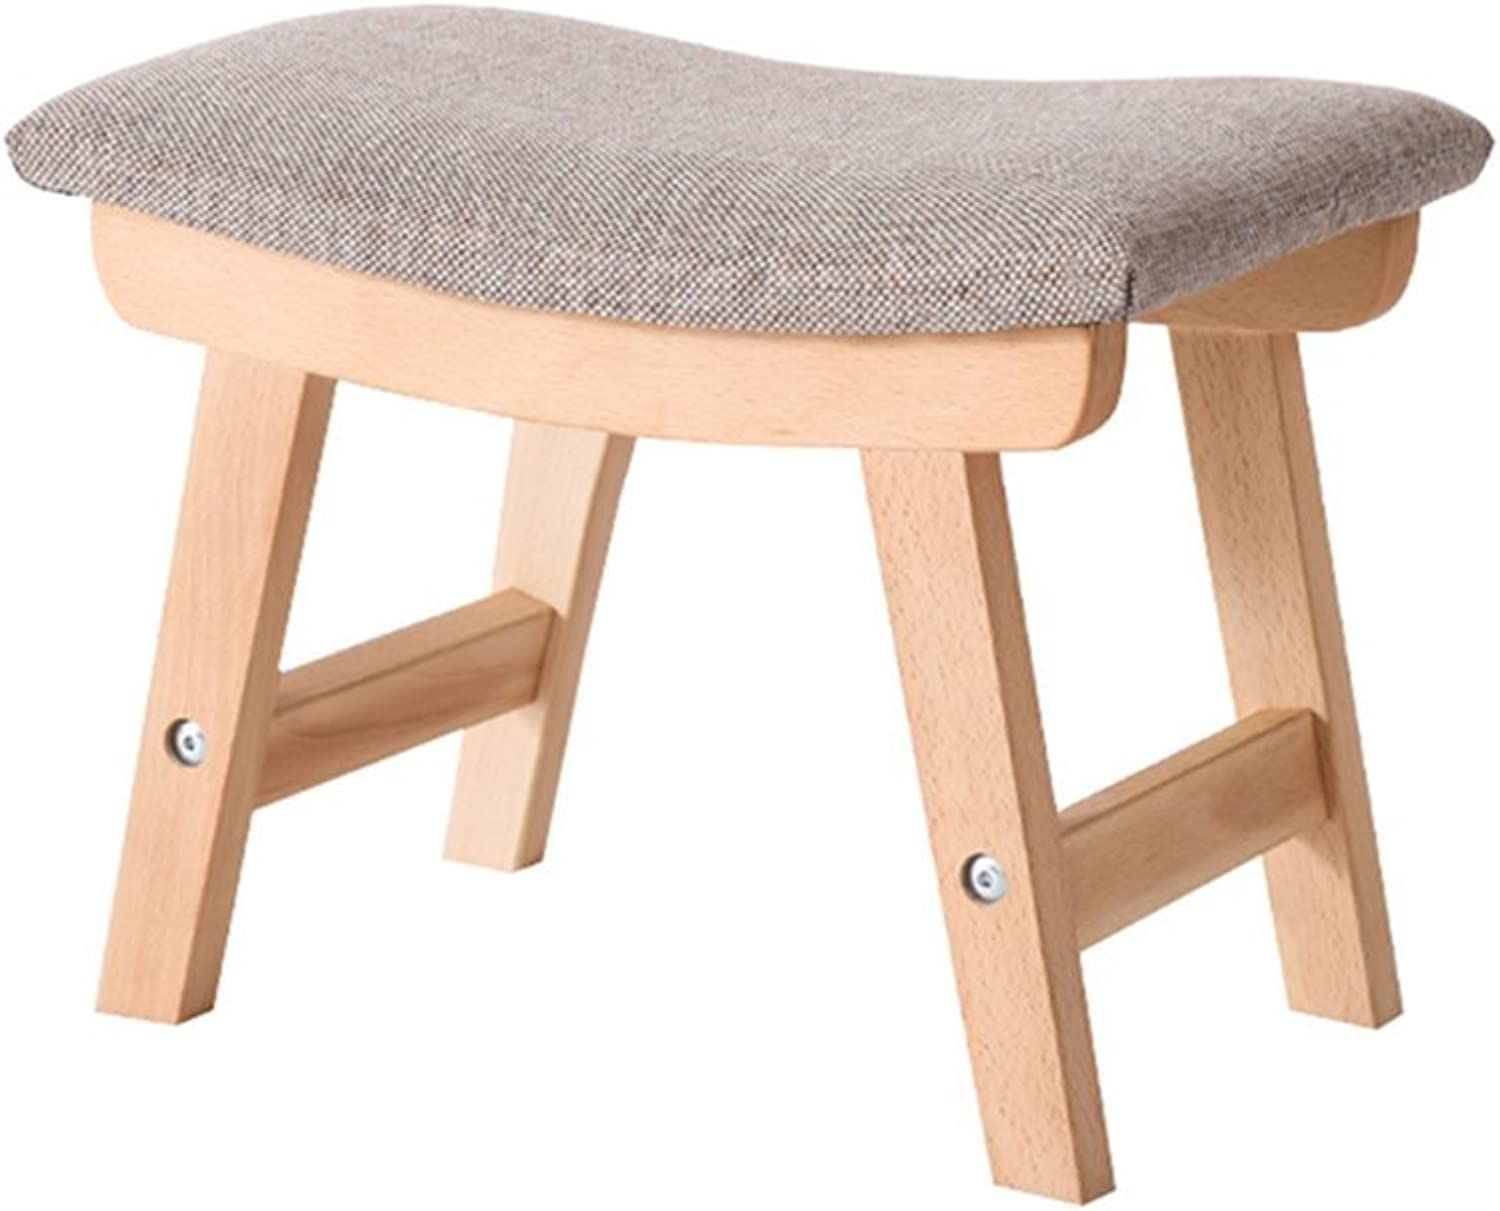 Lil Cloth Wood Stool Fashion Creative Stool Tea Table Stool Small Bench Modern Minimalist Home Stool Bench